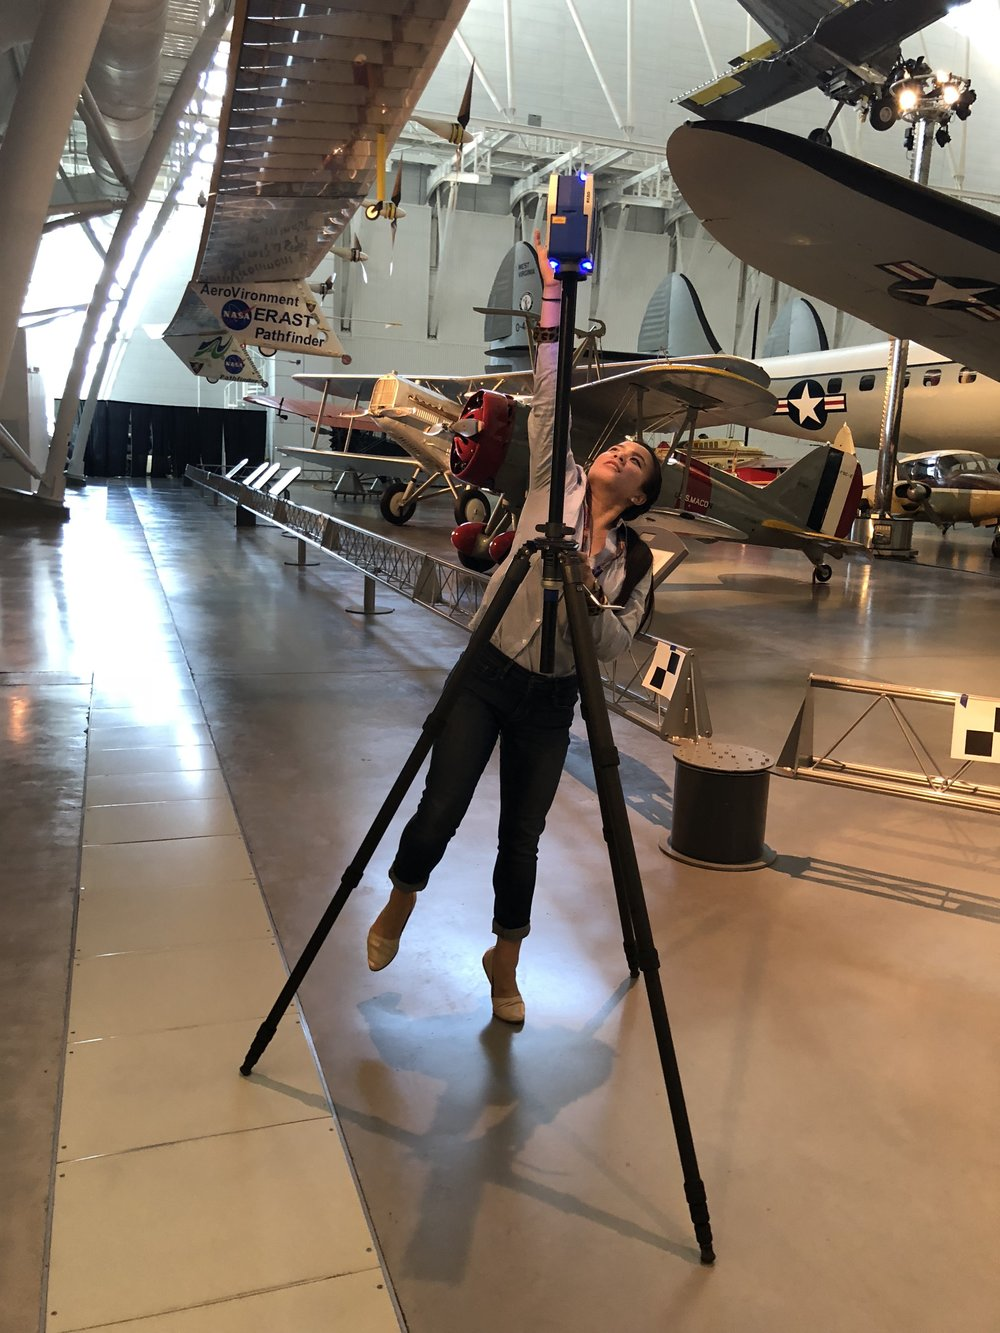 Faro 3D - Whole day shoot at Hazy Museum